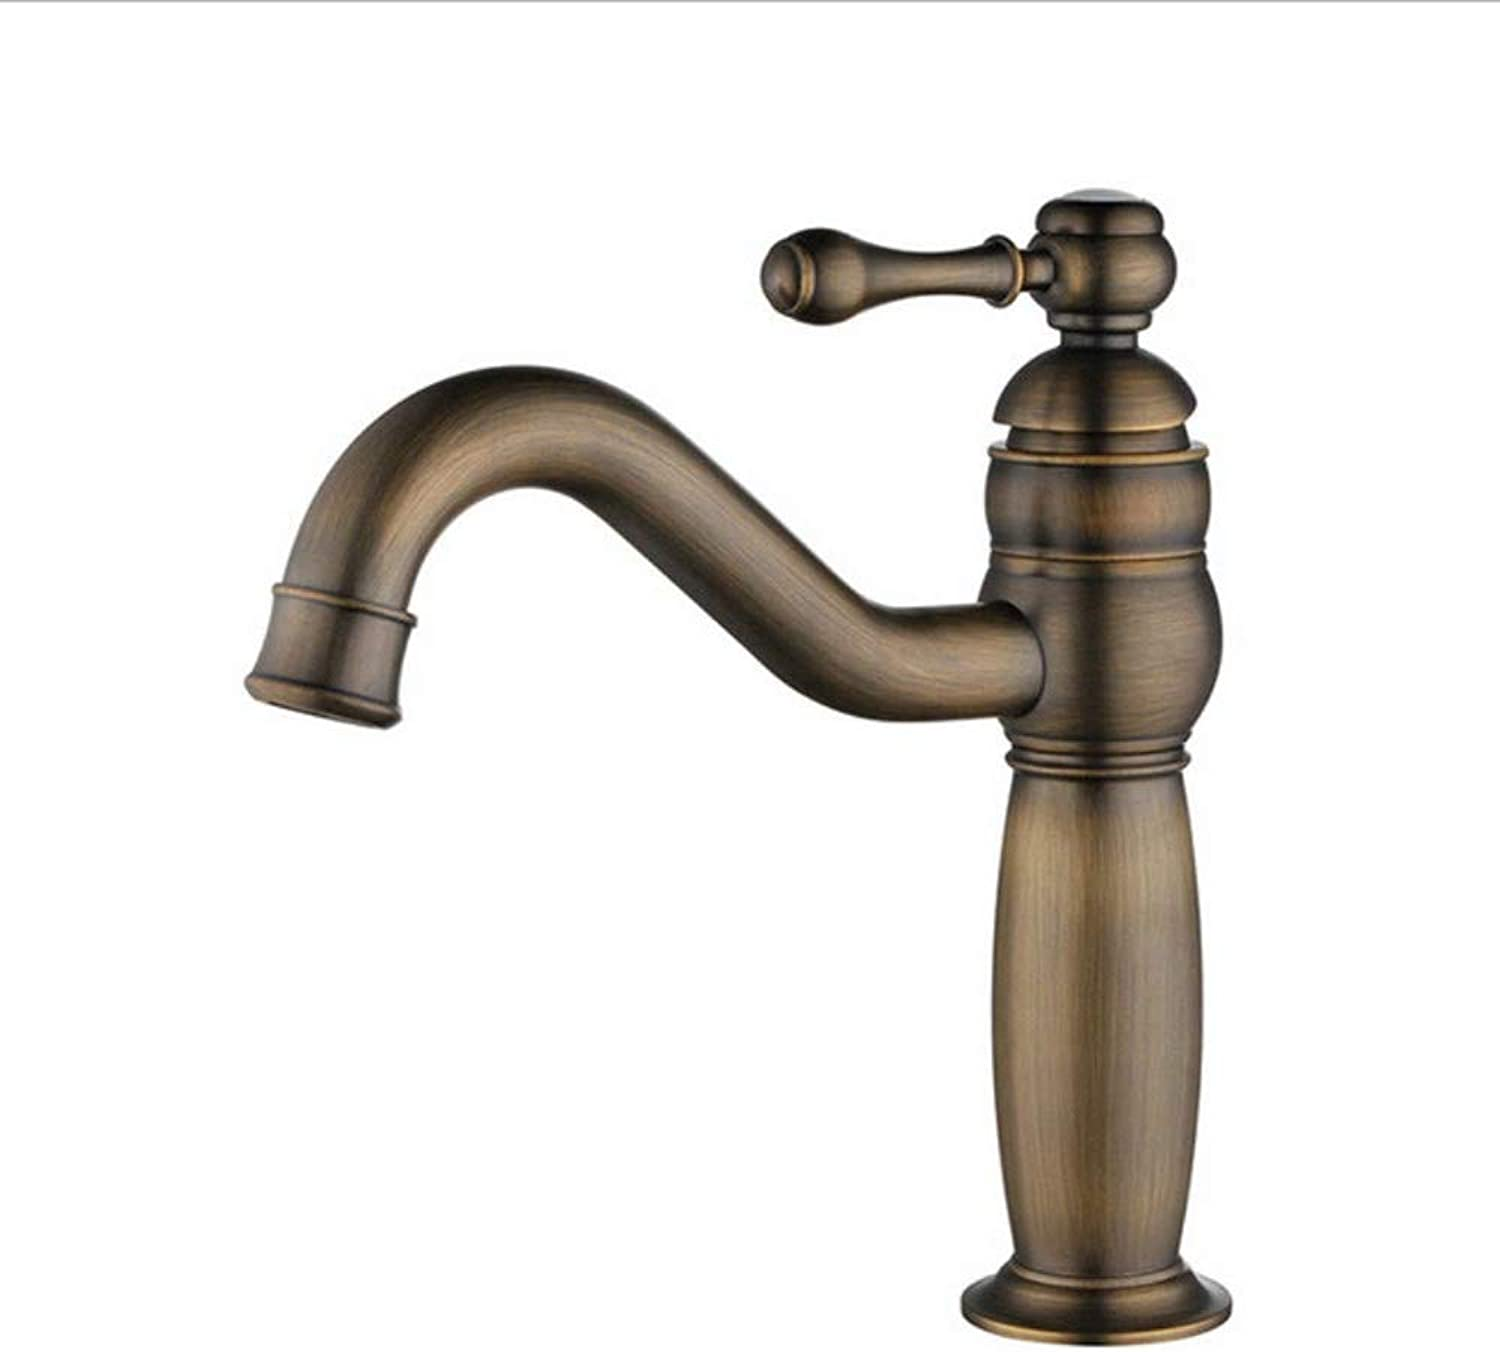 Modern Faucet Bathroom Faucetbathroom Cabinet Antique Copper Hot and Cold Wash Basin Wash Basin redating Faucet